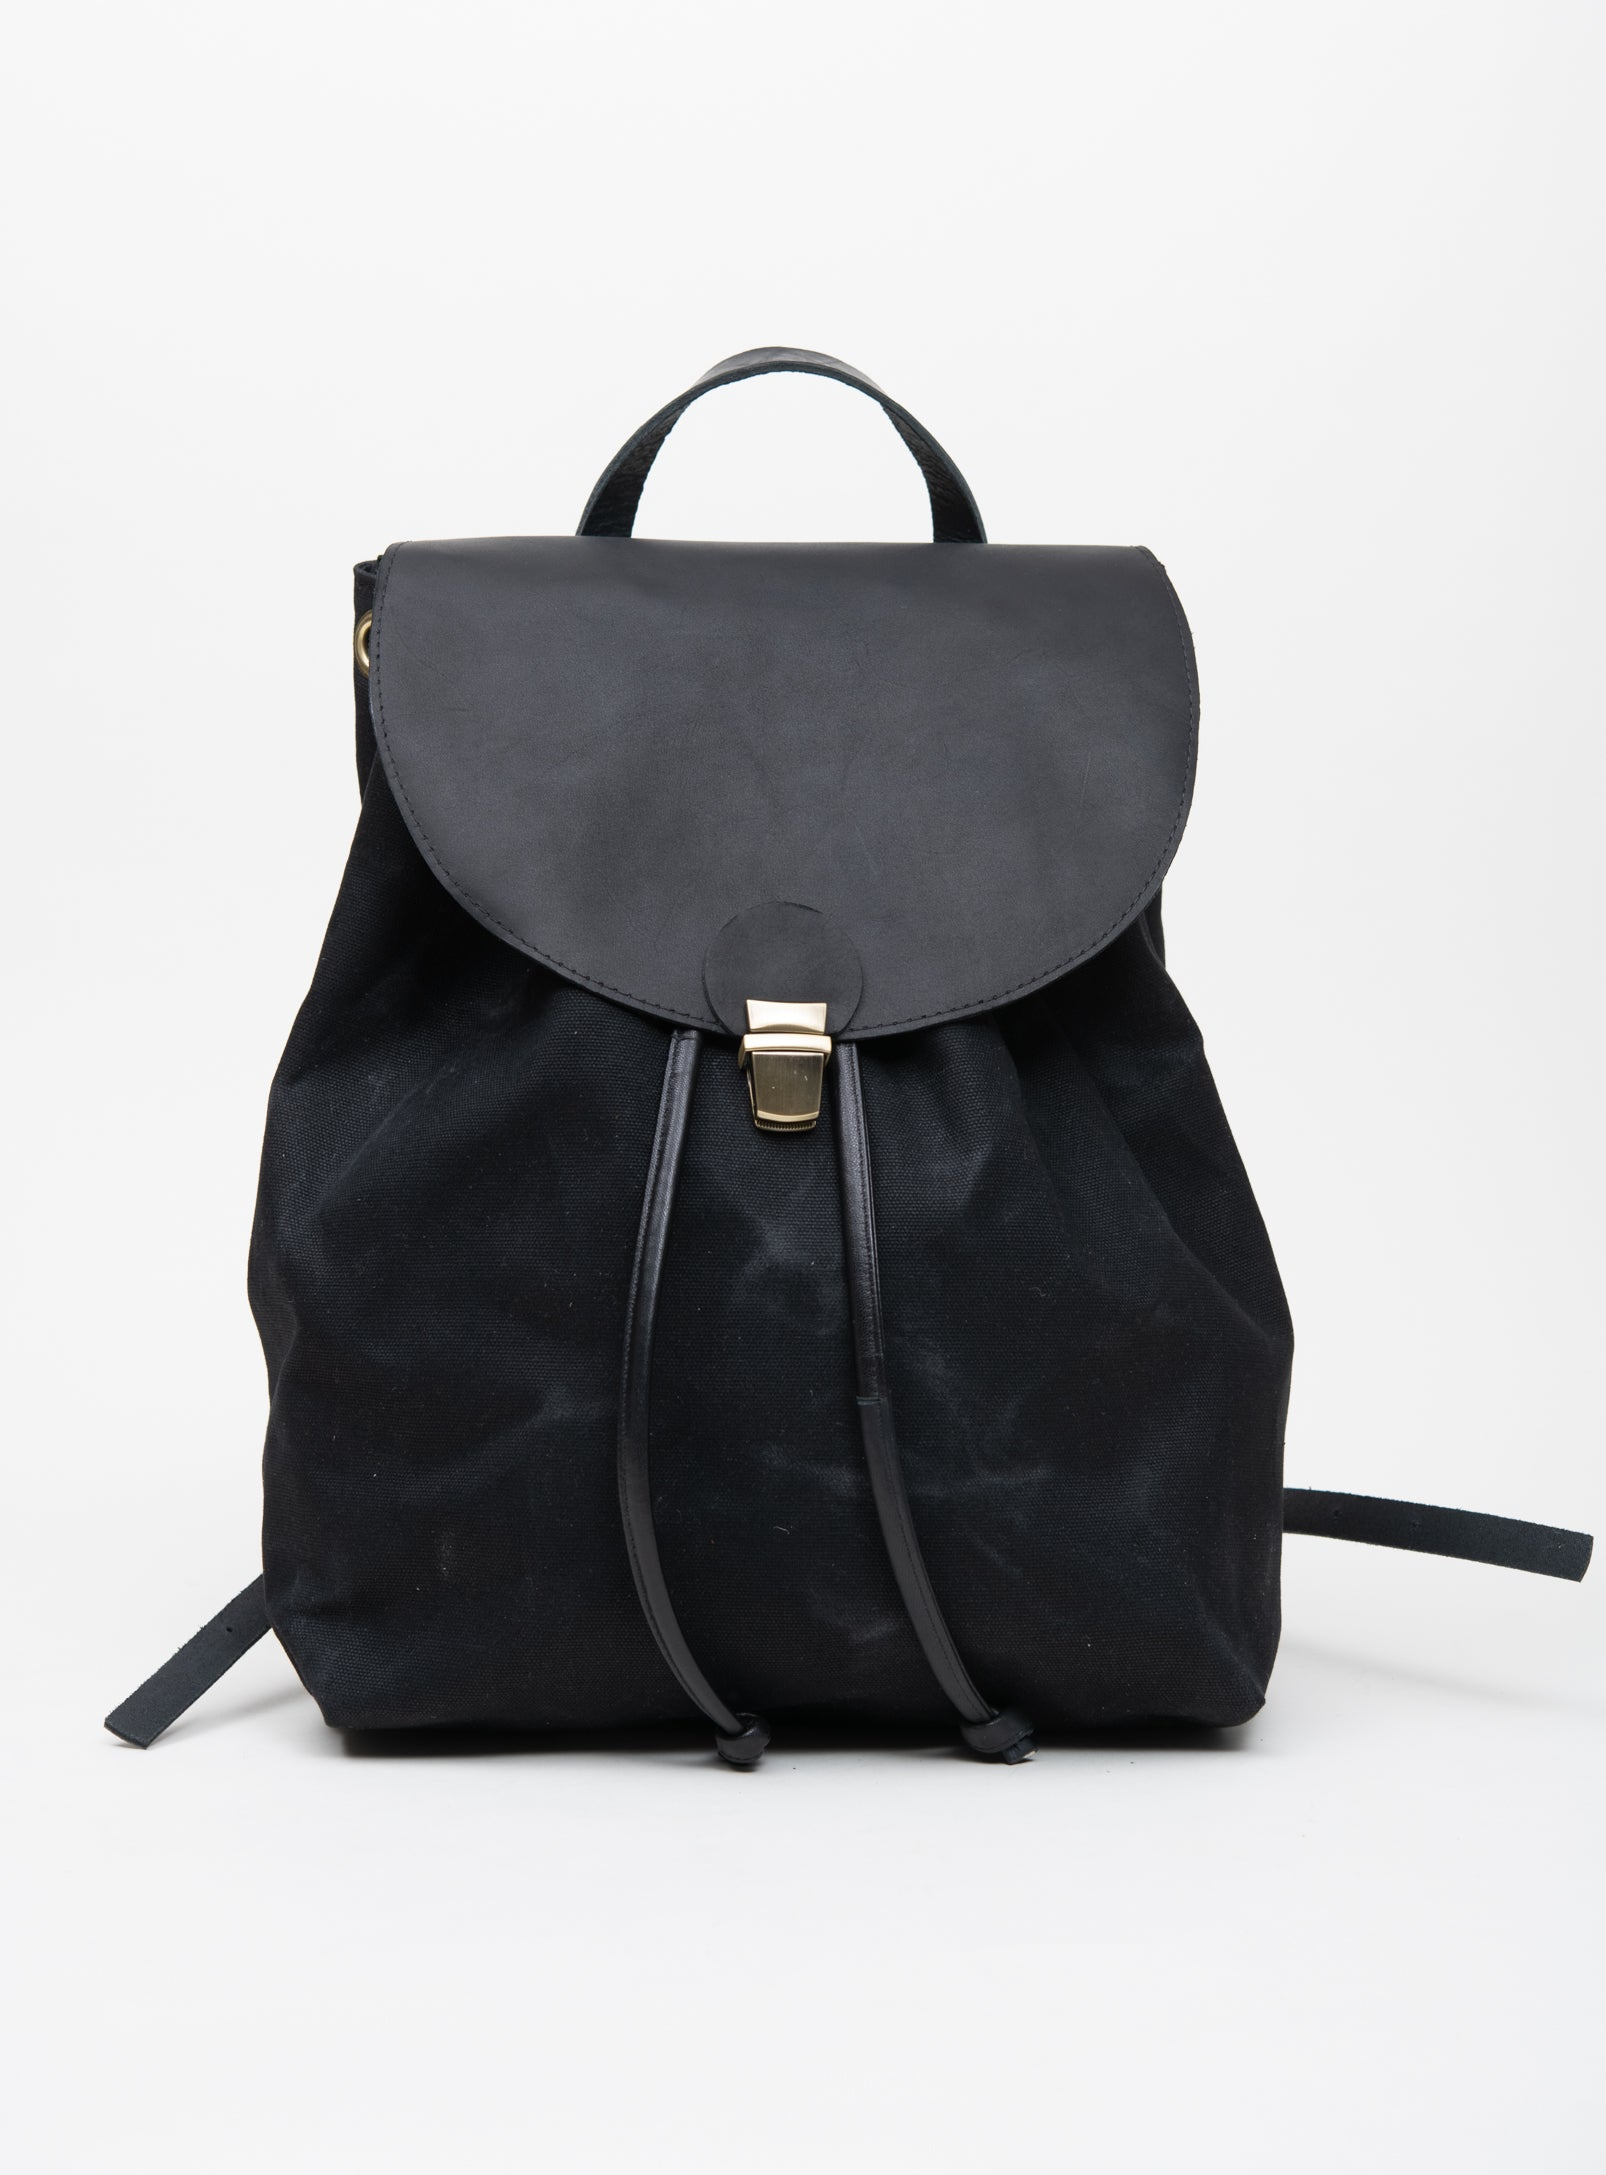 Veinage Leather and waxed coton rucksack MILAN model Large